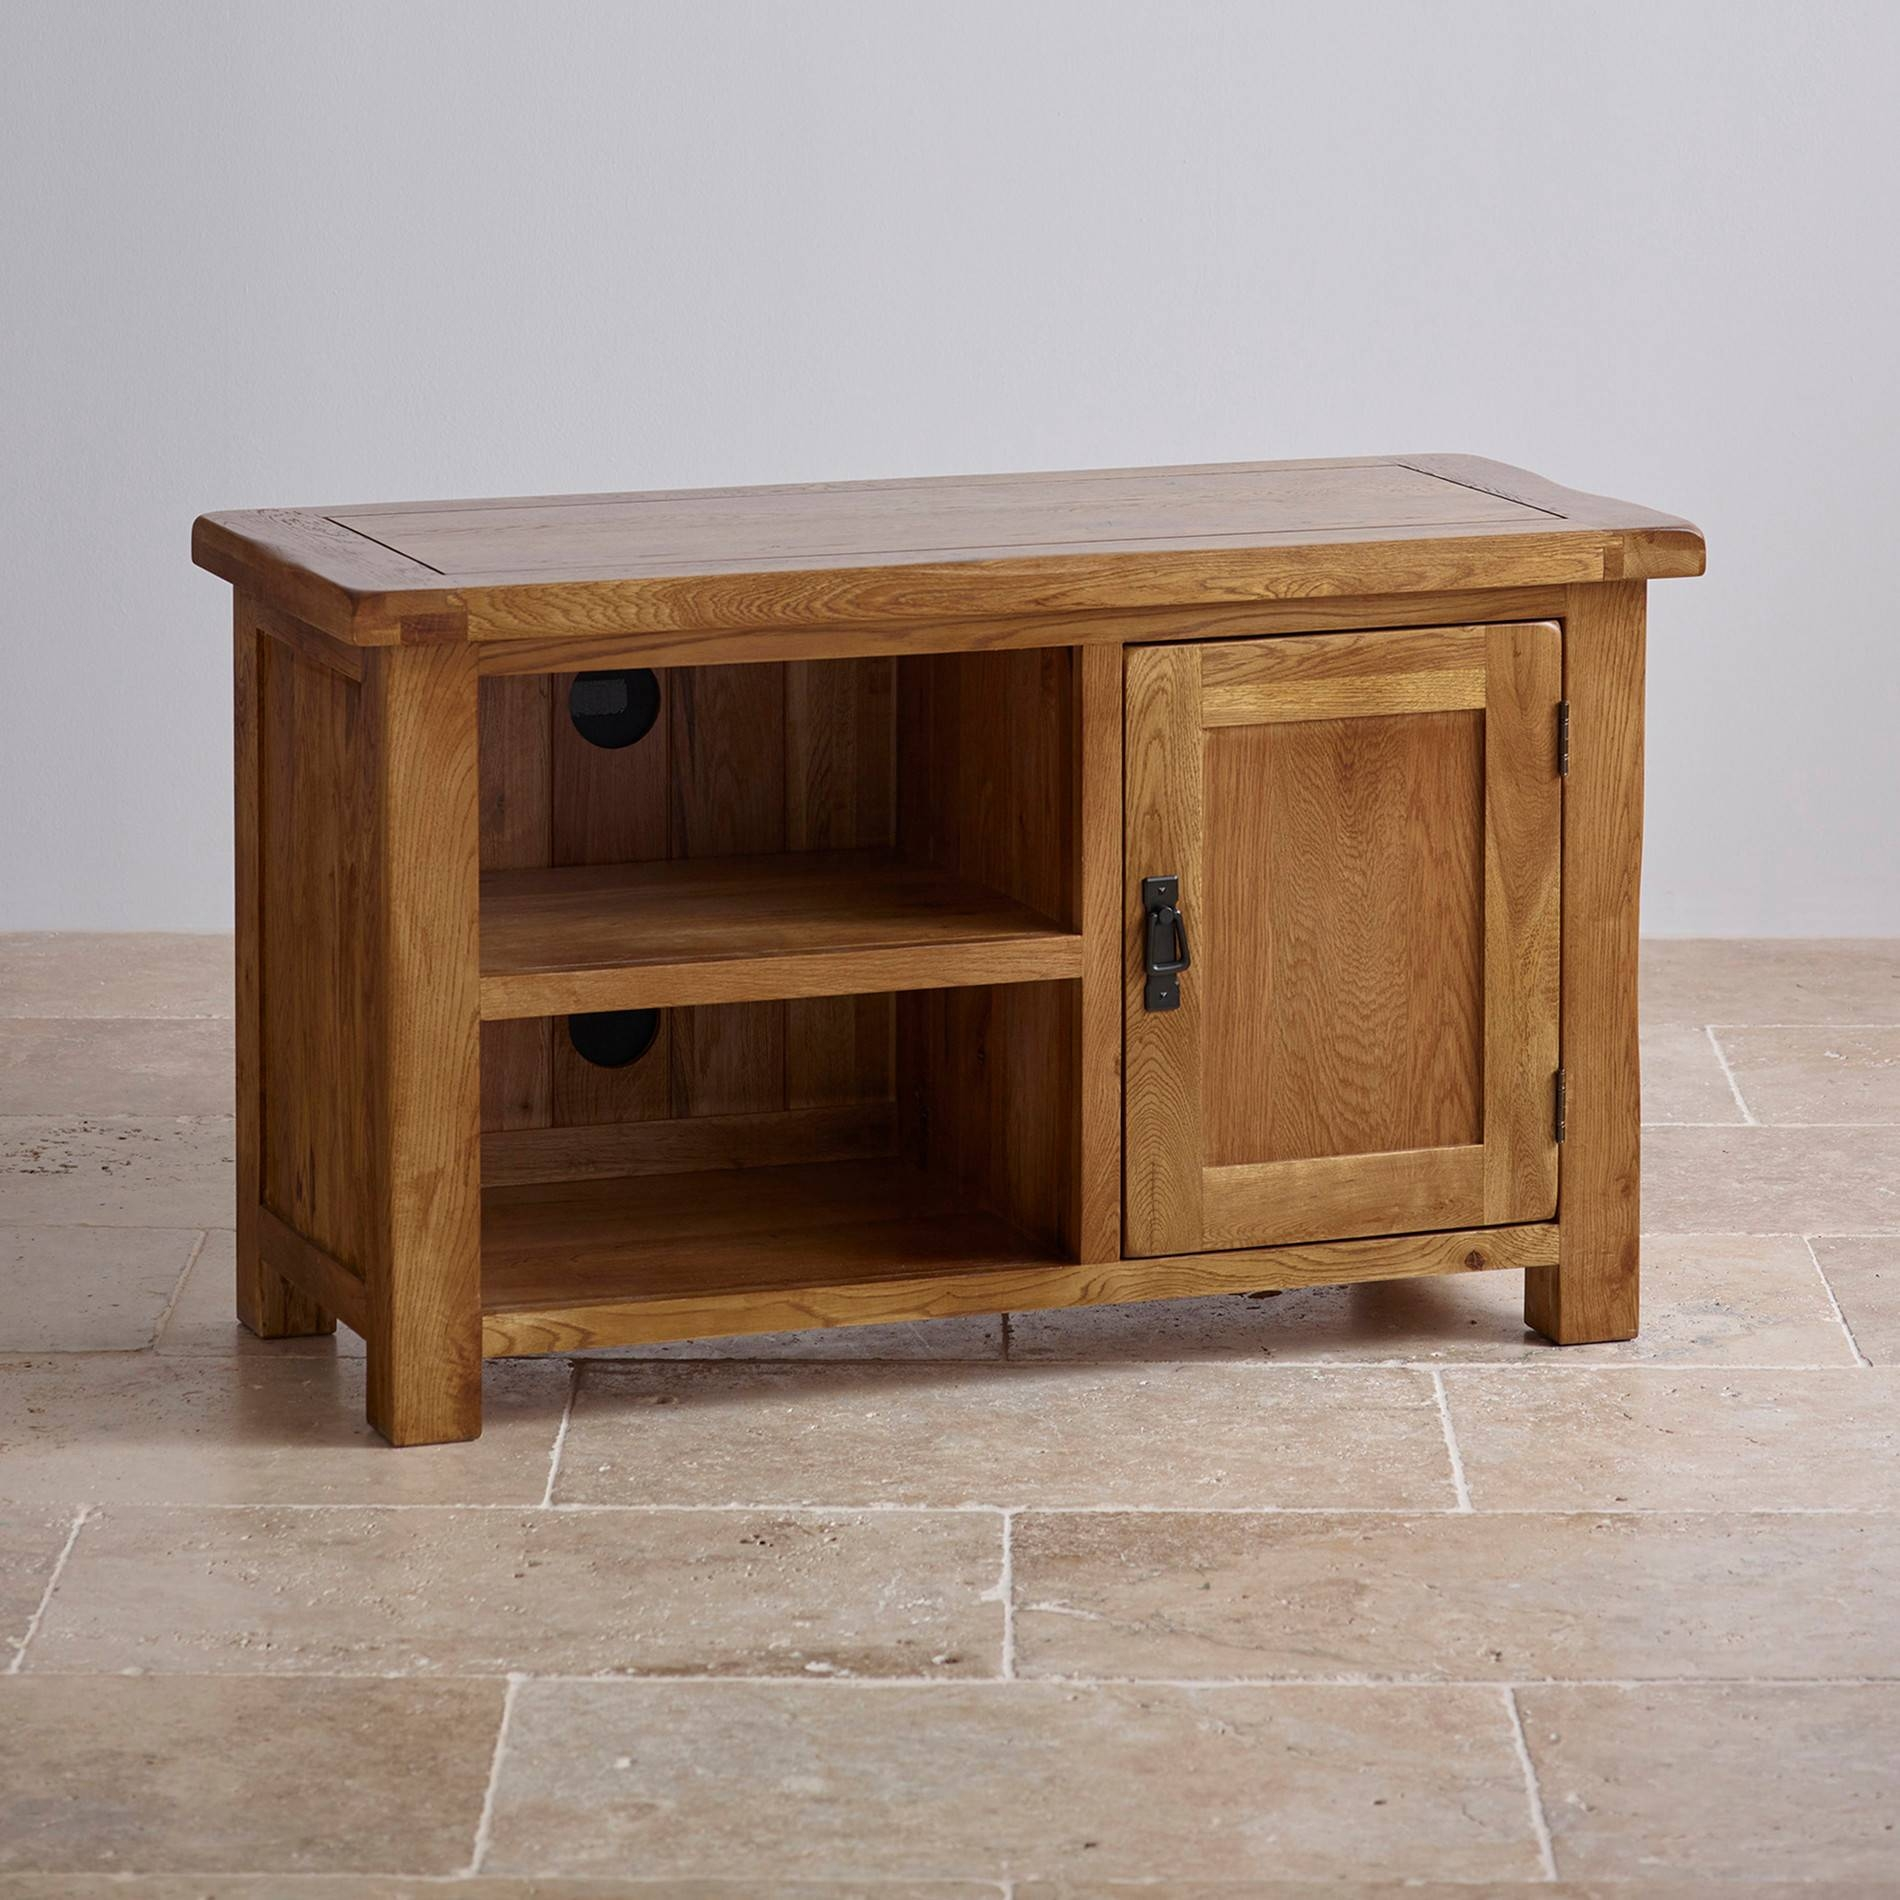 Original Rustic Tv Cabinet In Solid Oak | Oak Furniture Land in Solid Oak Tv Cabinets (Image 9 of 15)